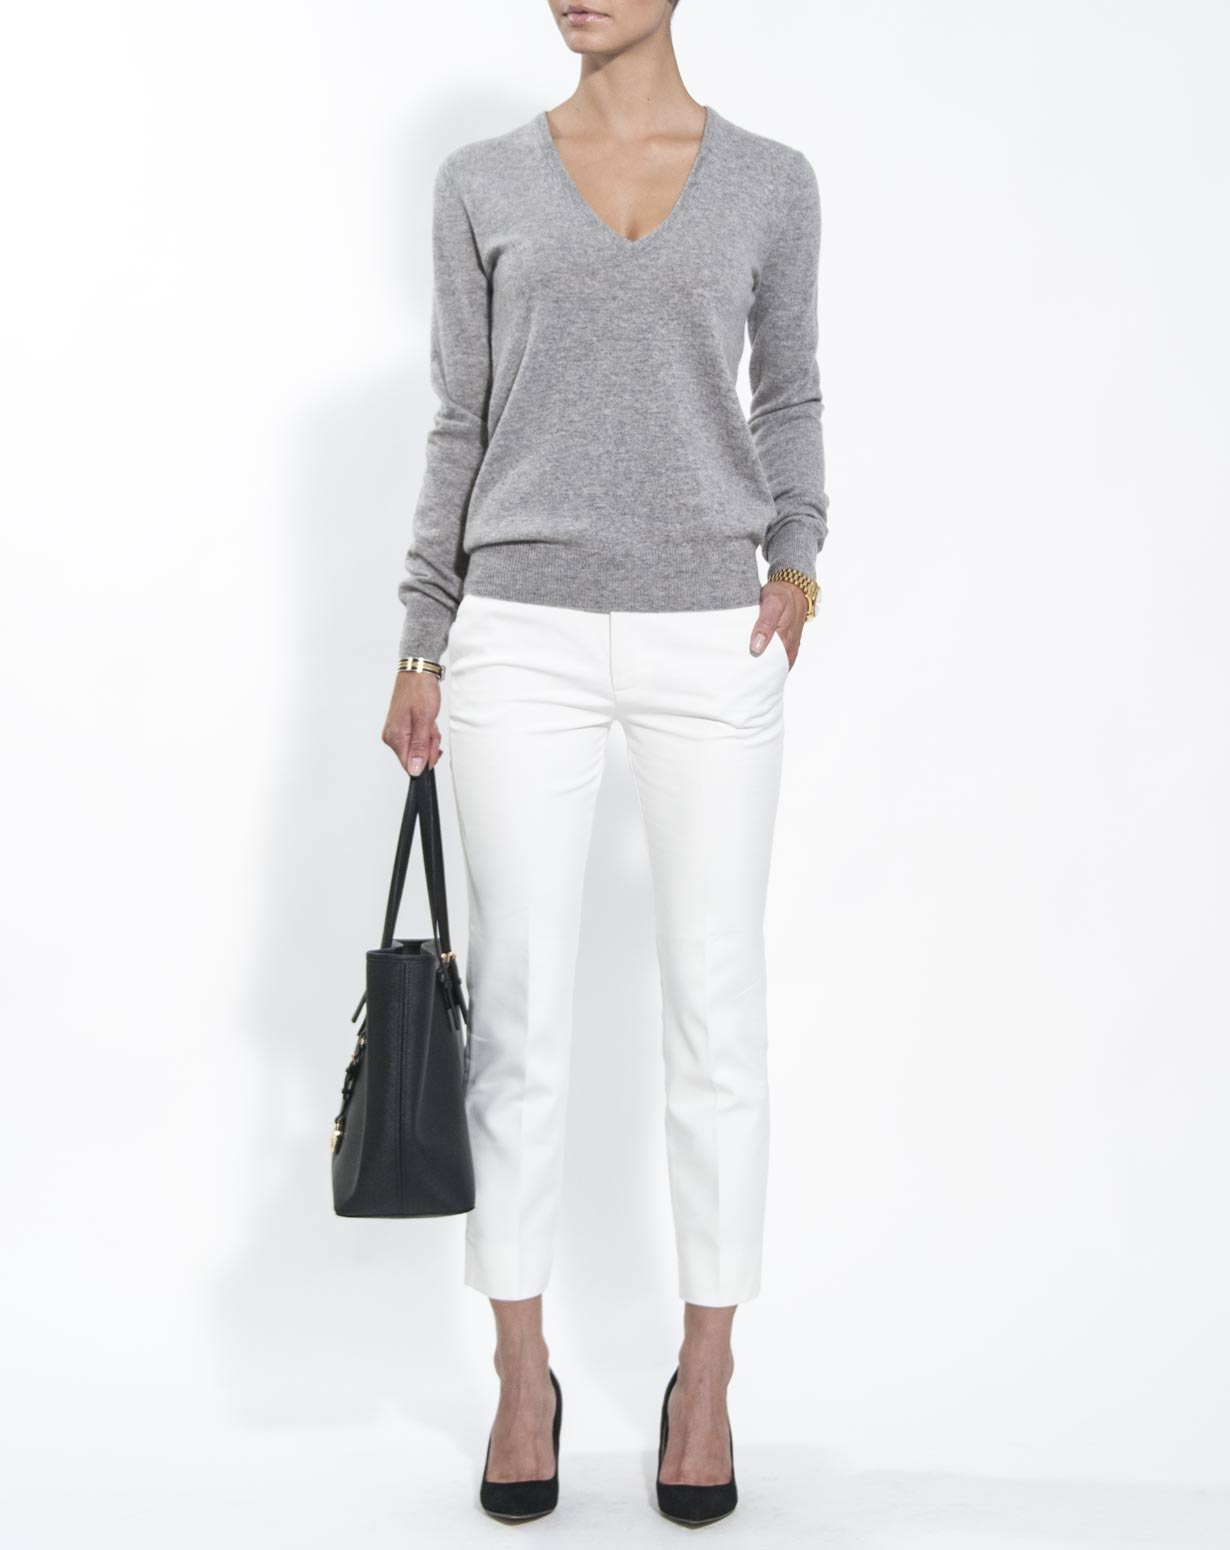 Womens V Neck Sweater With Collared Shirt Underneath 21th Blouse